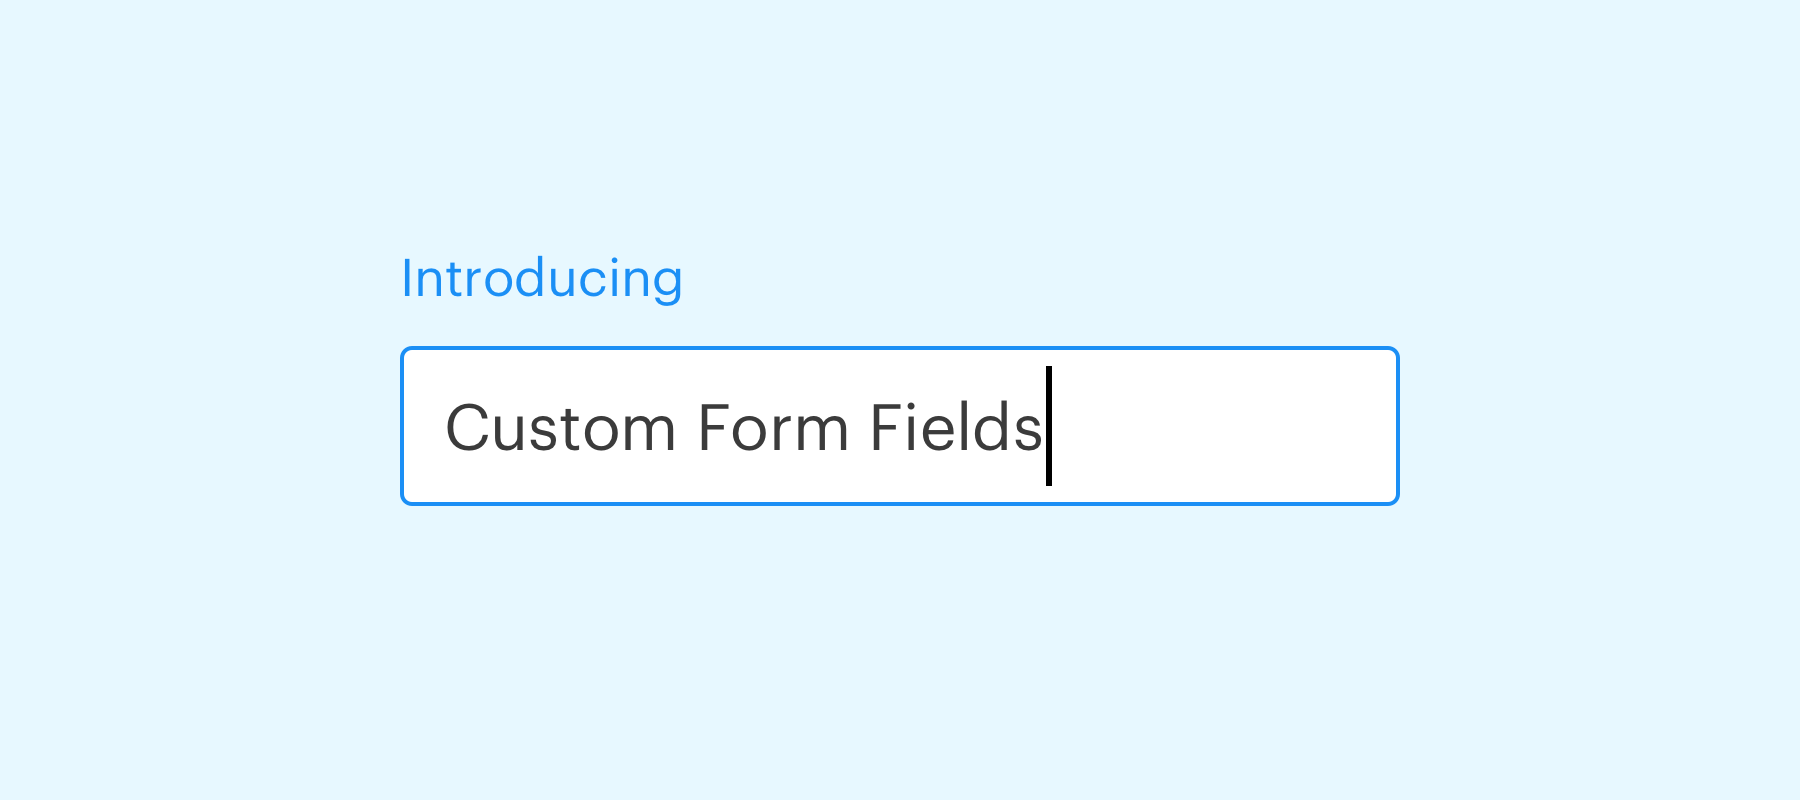 Introducing: Custom Form Fields